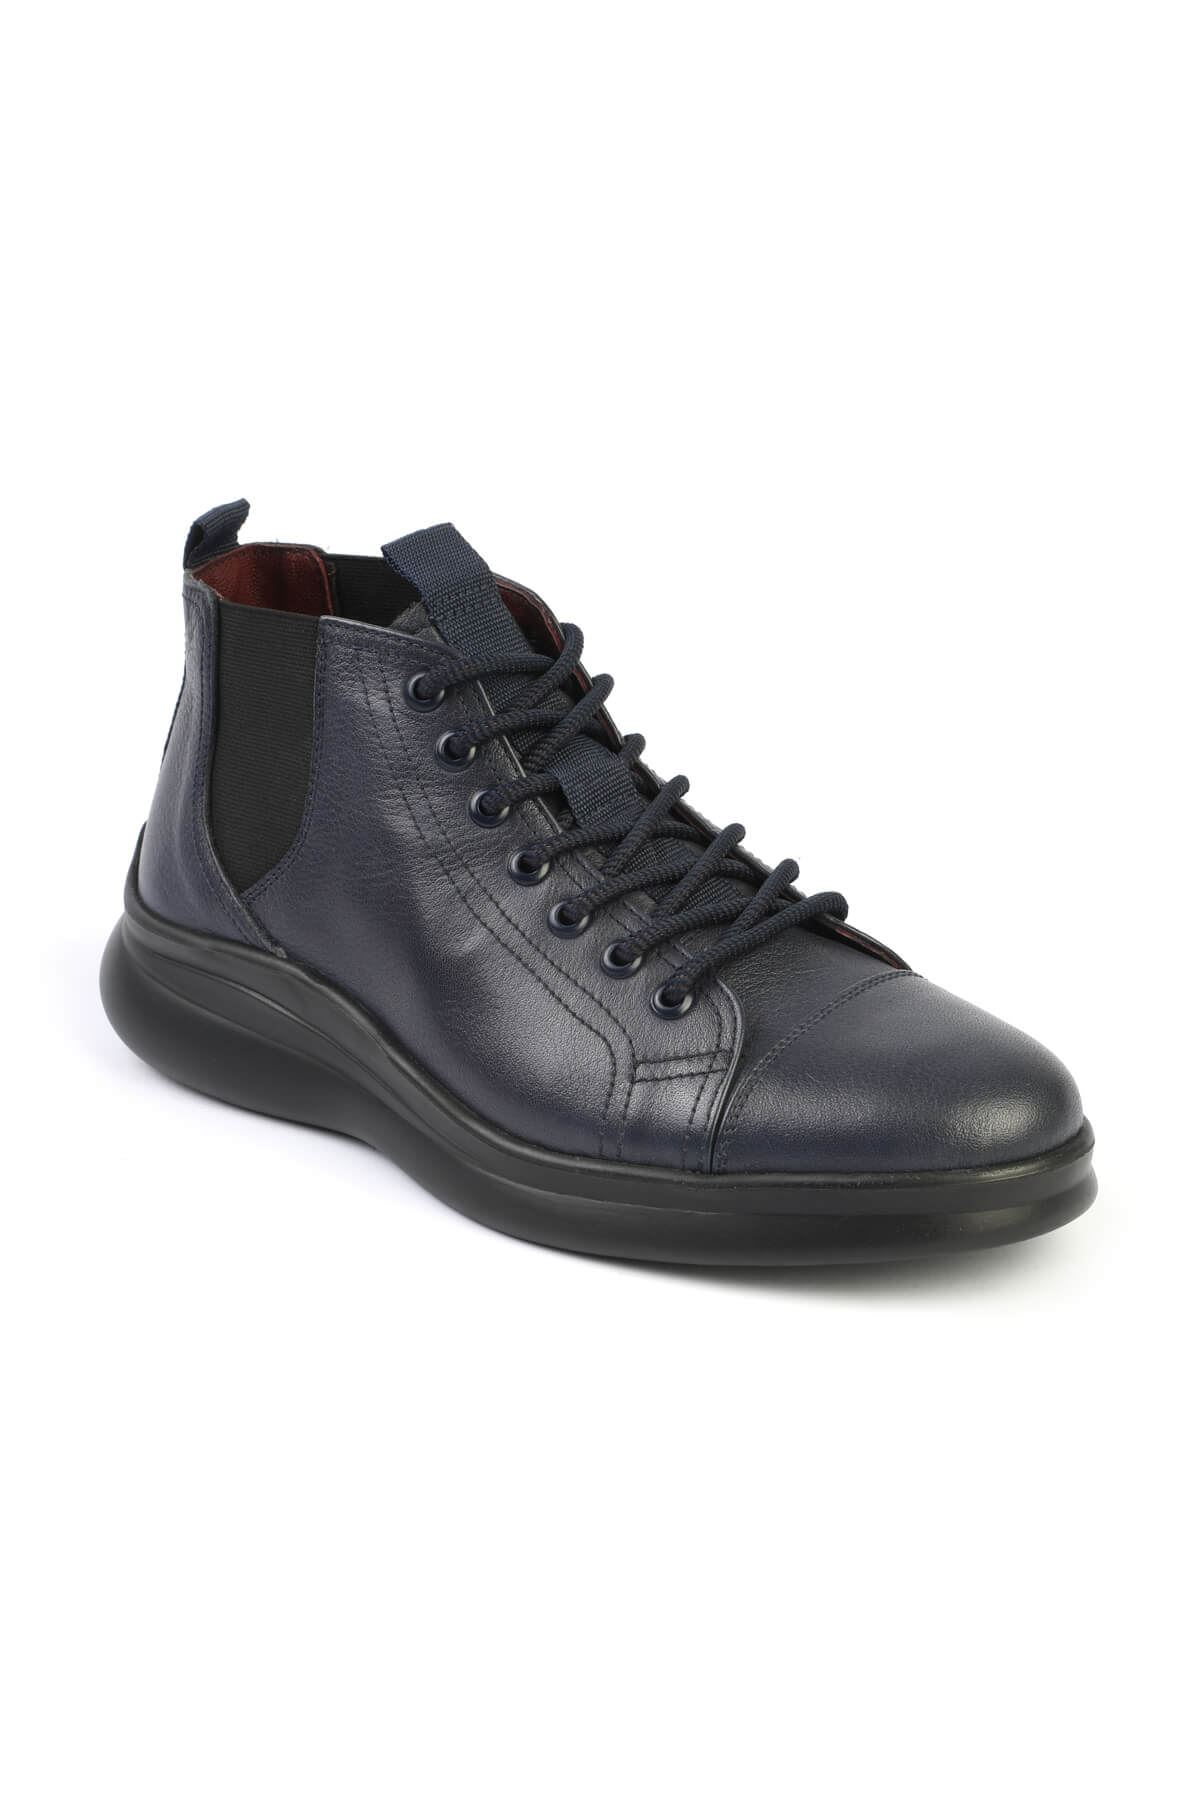 Libero 1328 Navy Blue Men Boots